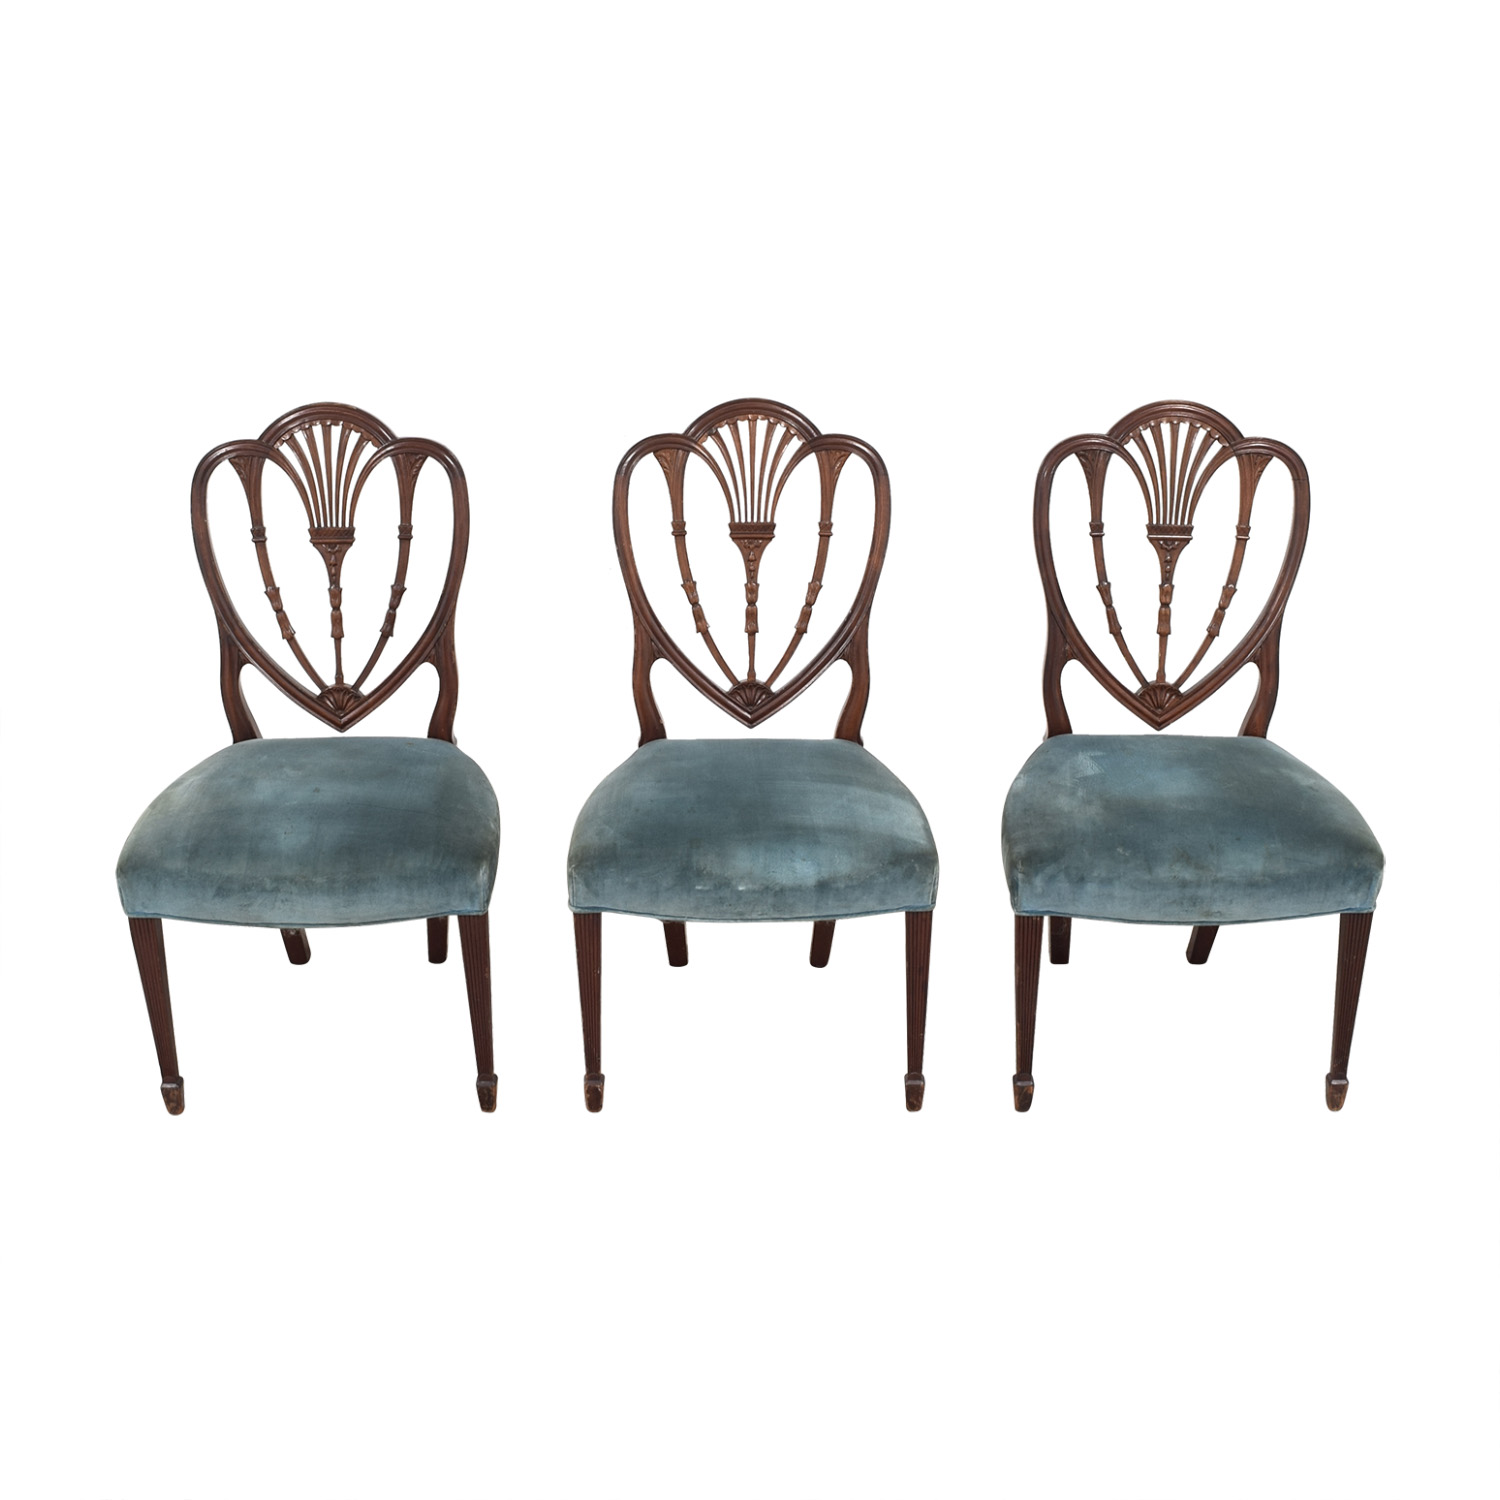 Vintage Decorative Dining Chairs pa